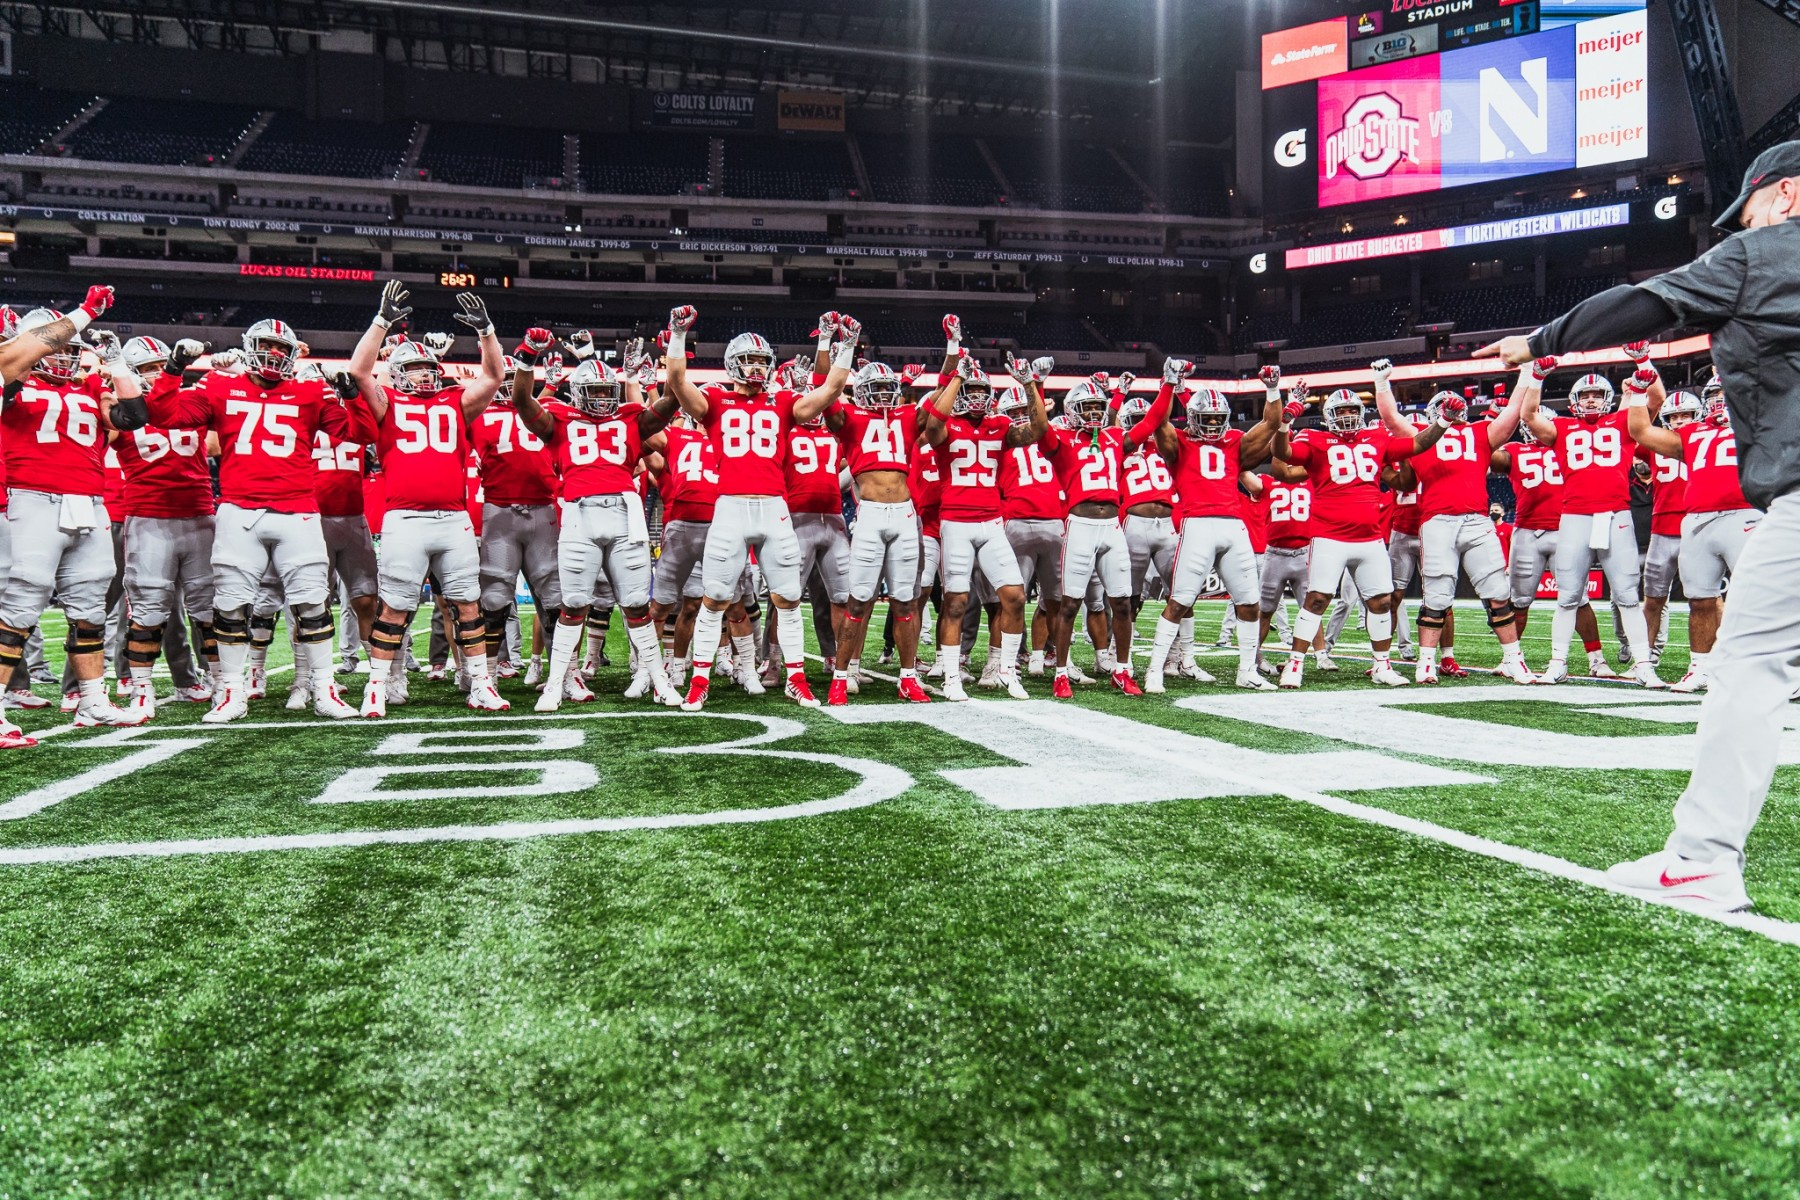 The Ohio State football team at the 2020 Big Ten Championship